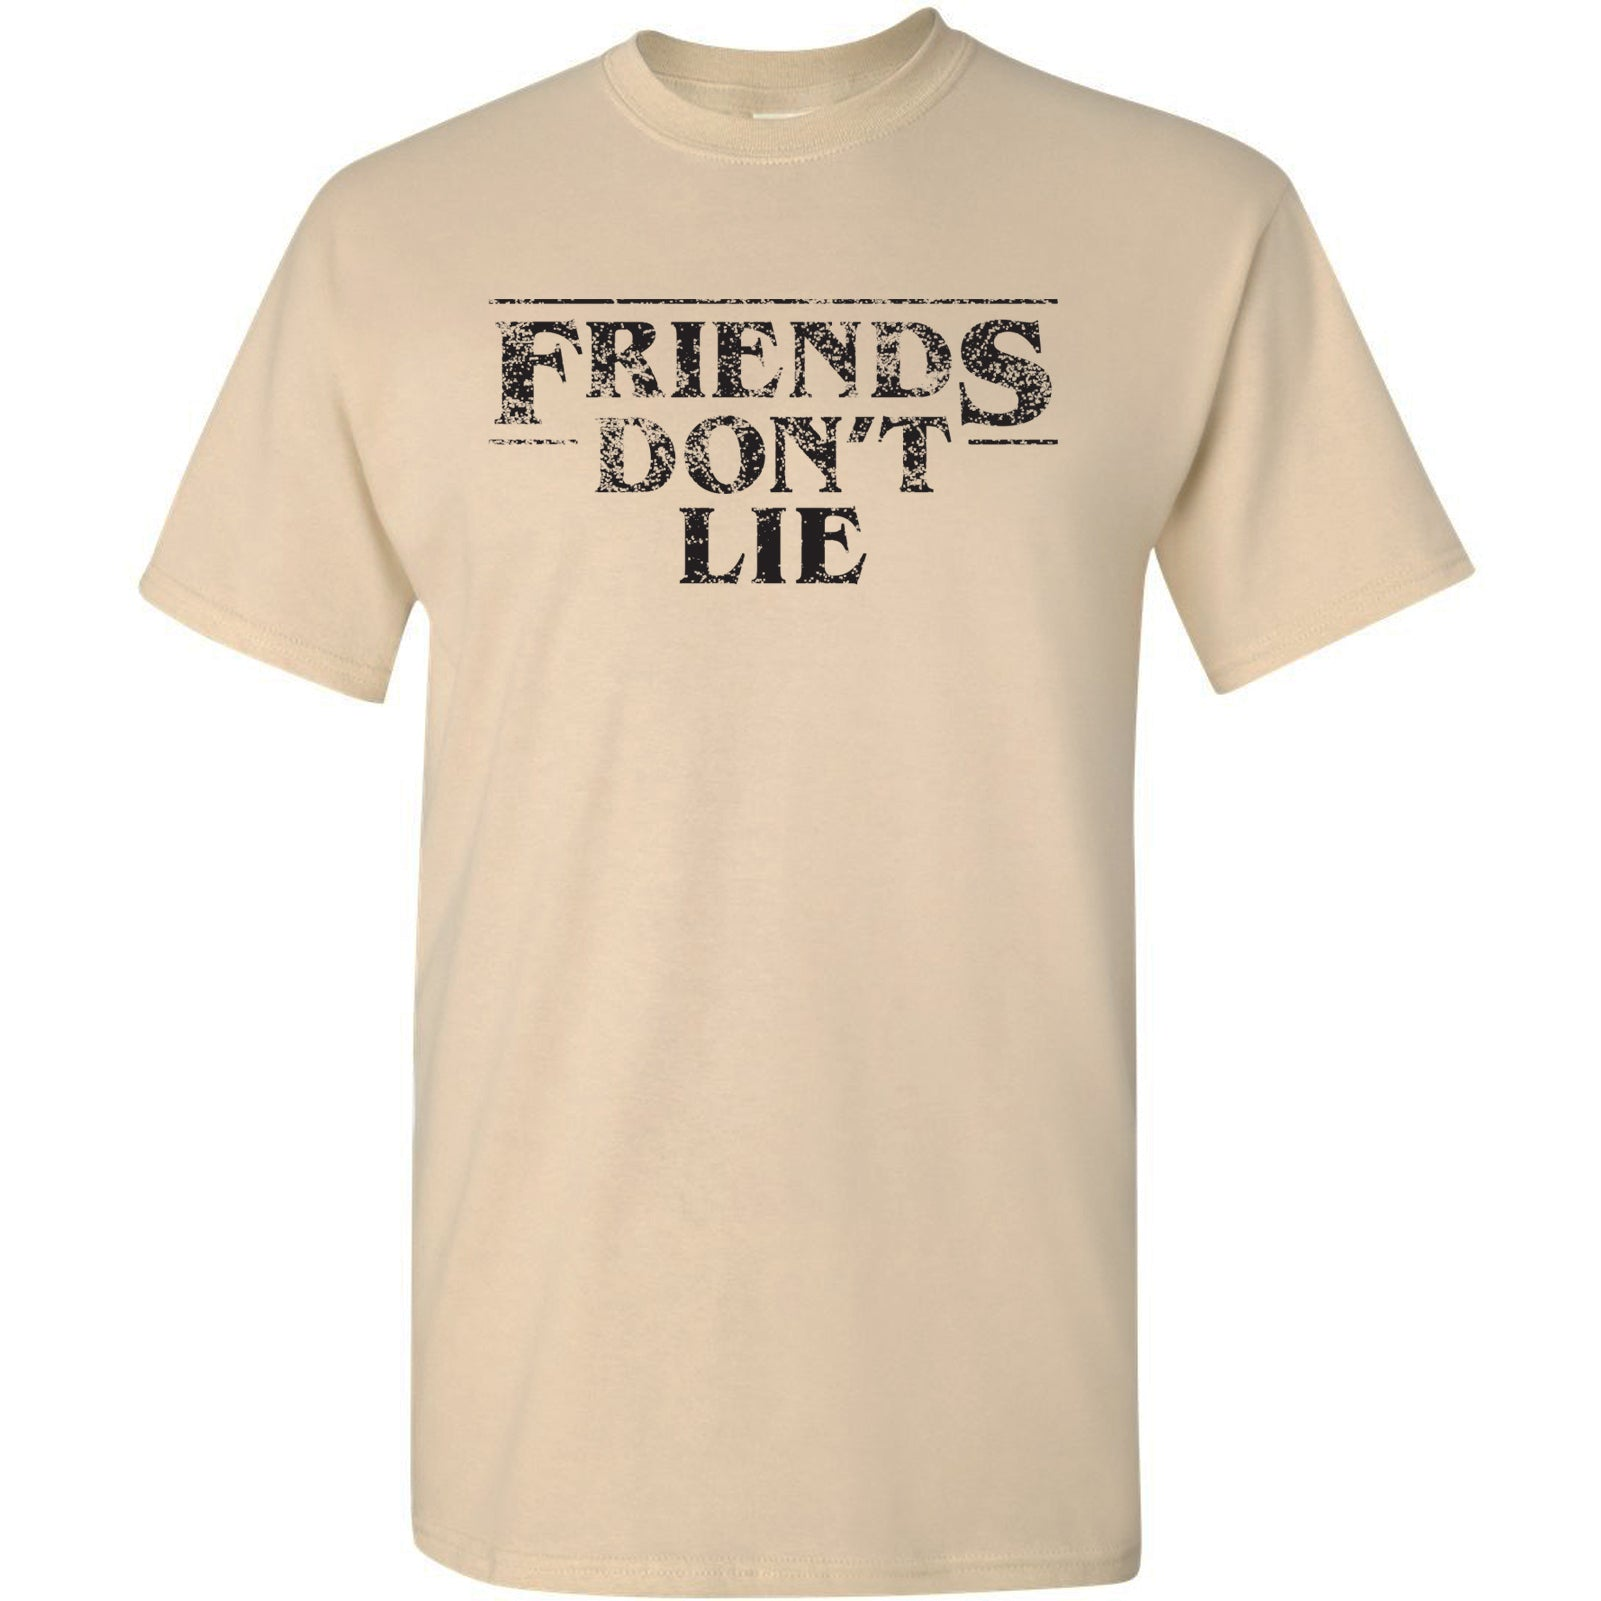 34fbacf4 Friends Don't Lie - Stranger of Things - T-Shirt - Sand - UGP